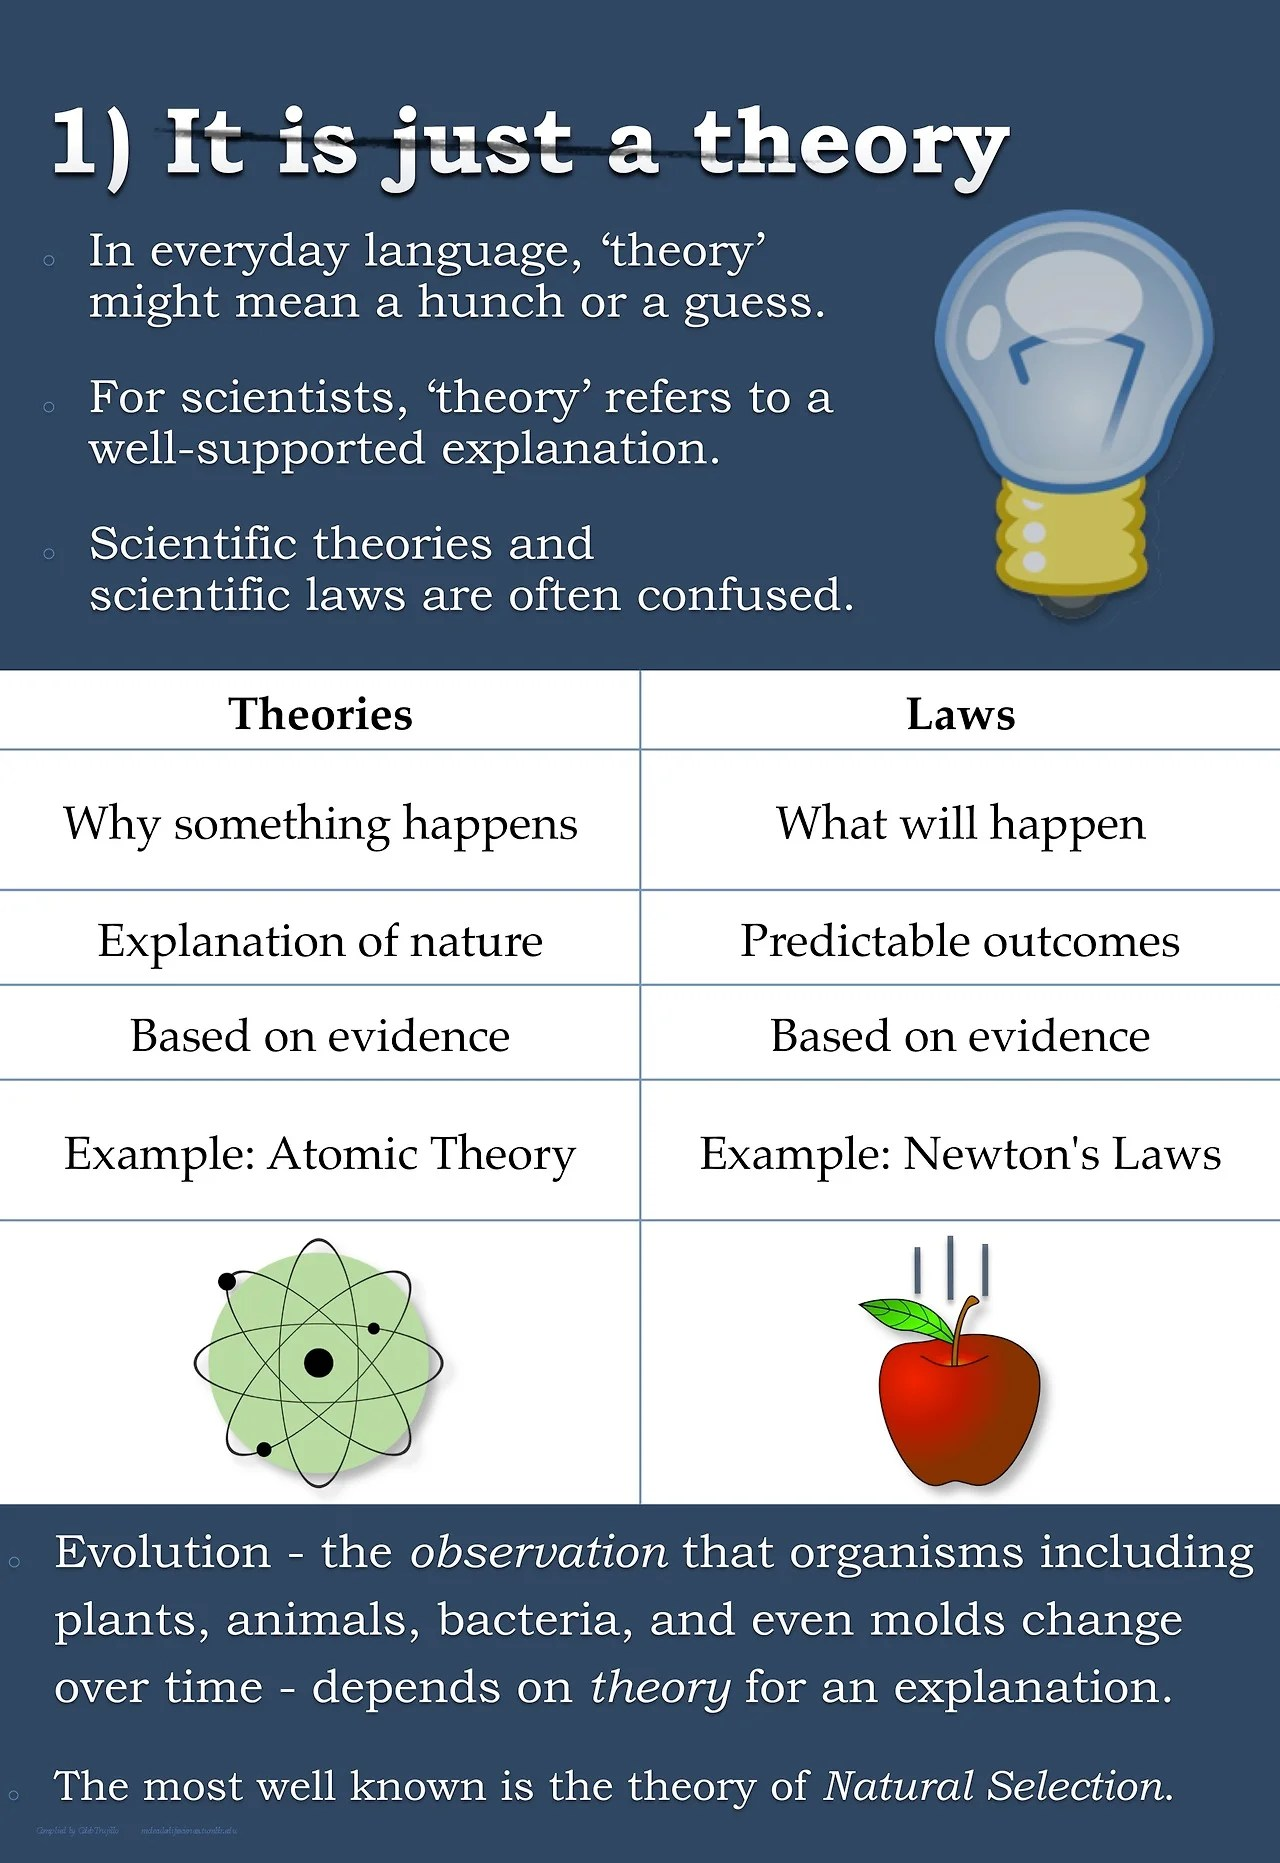 Top Five Misconceptions About Evolution According To